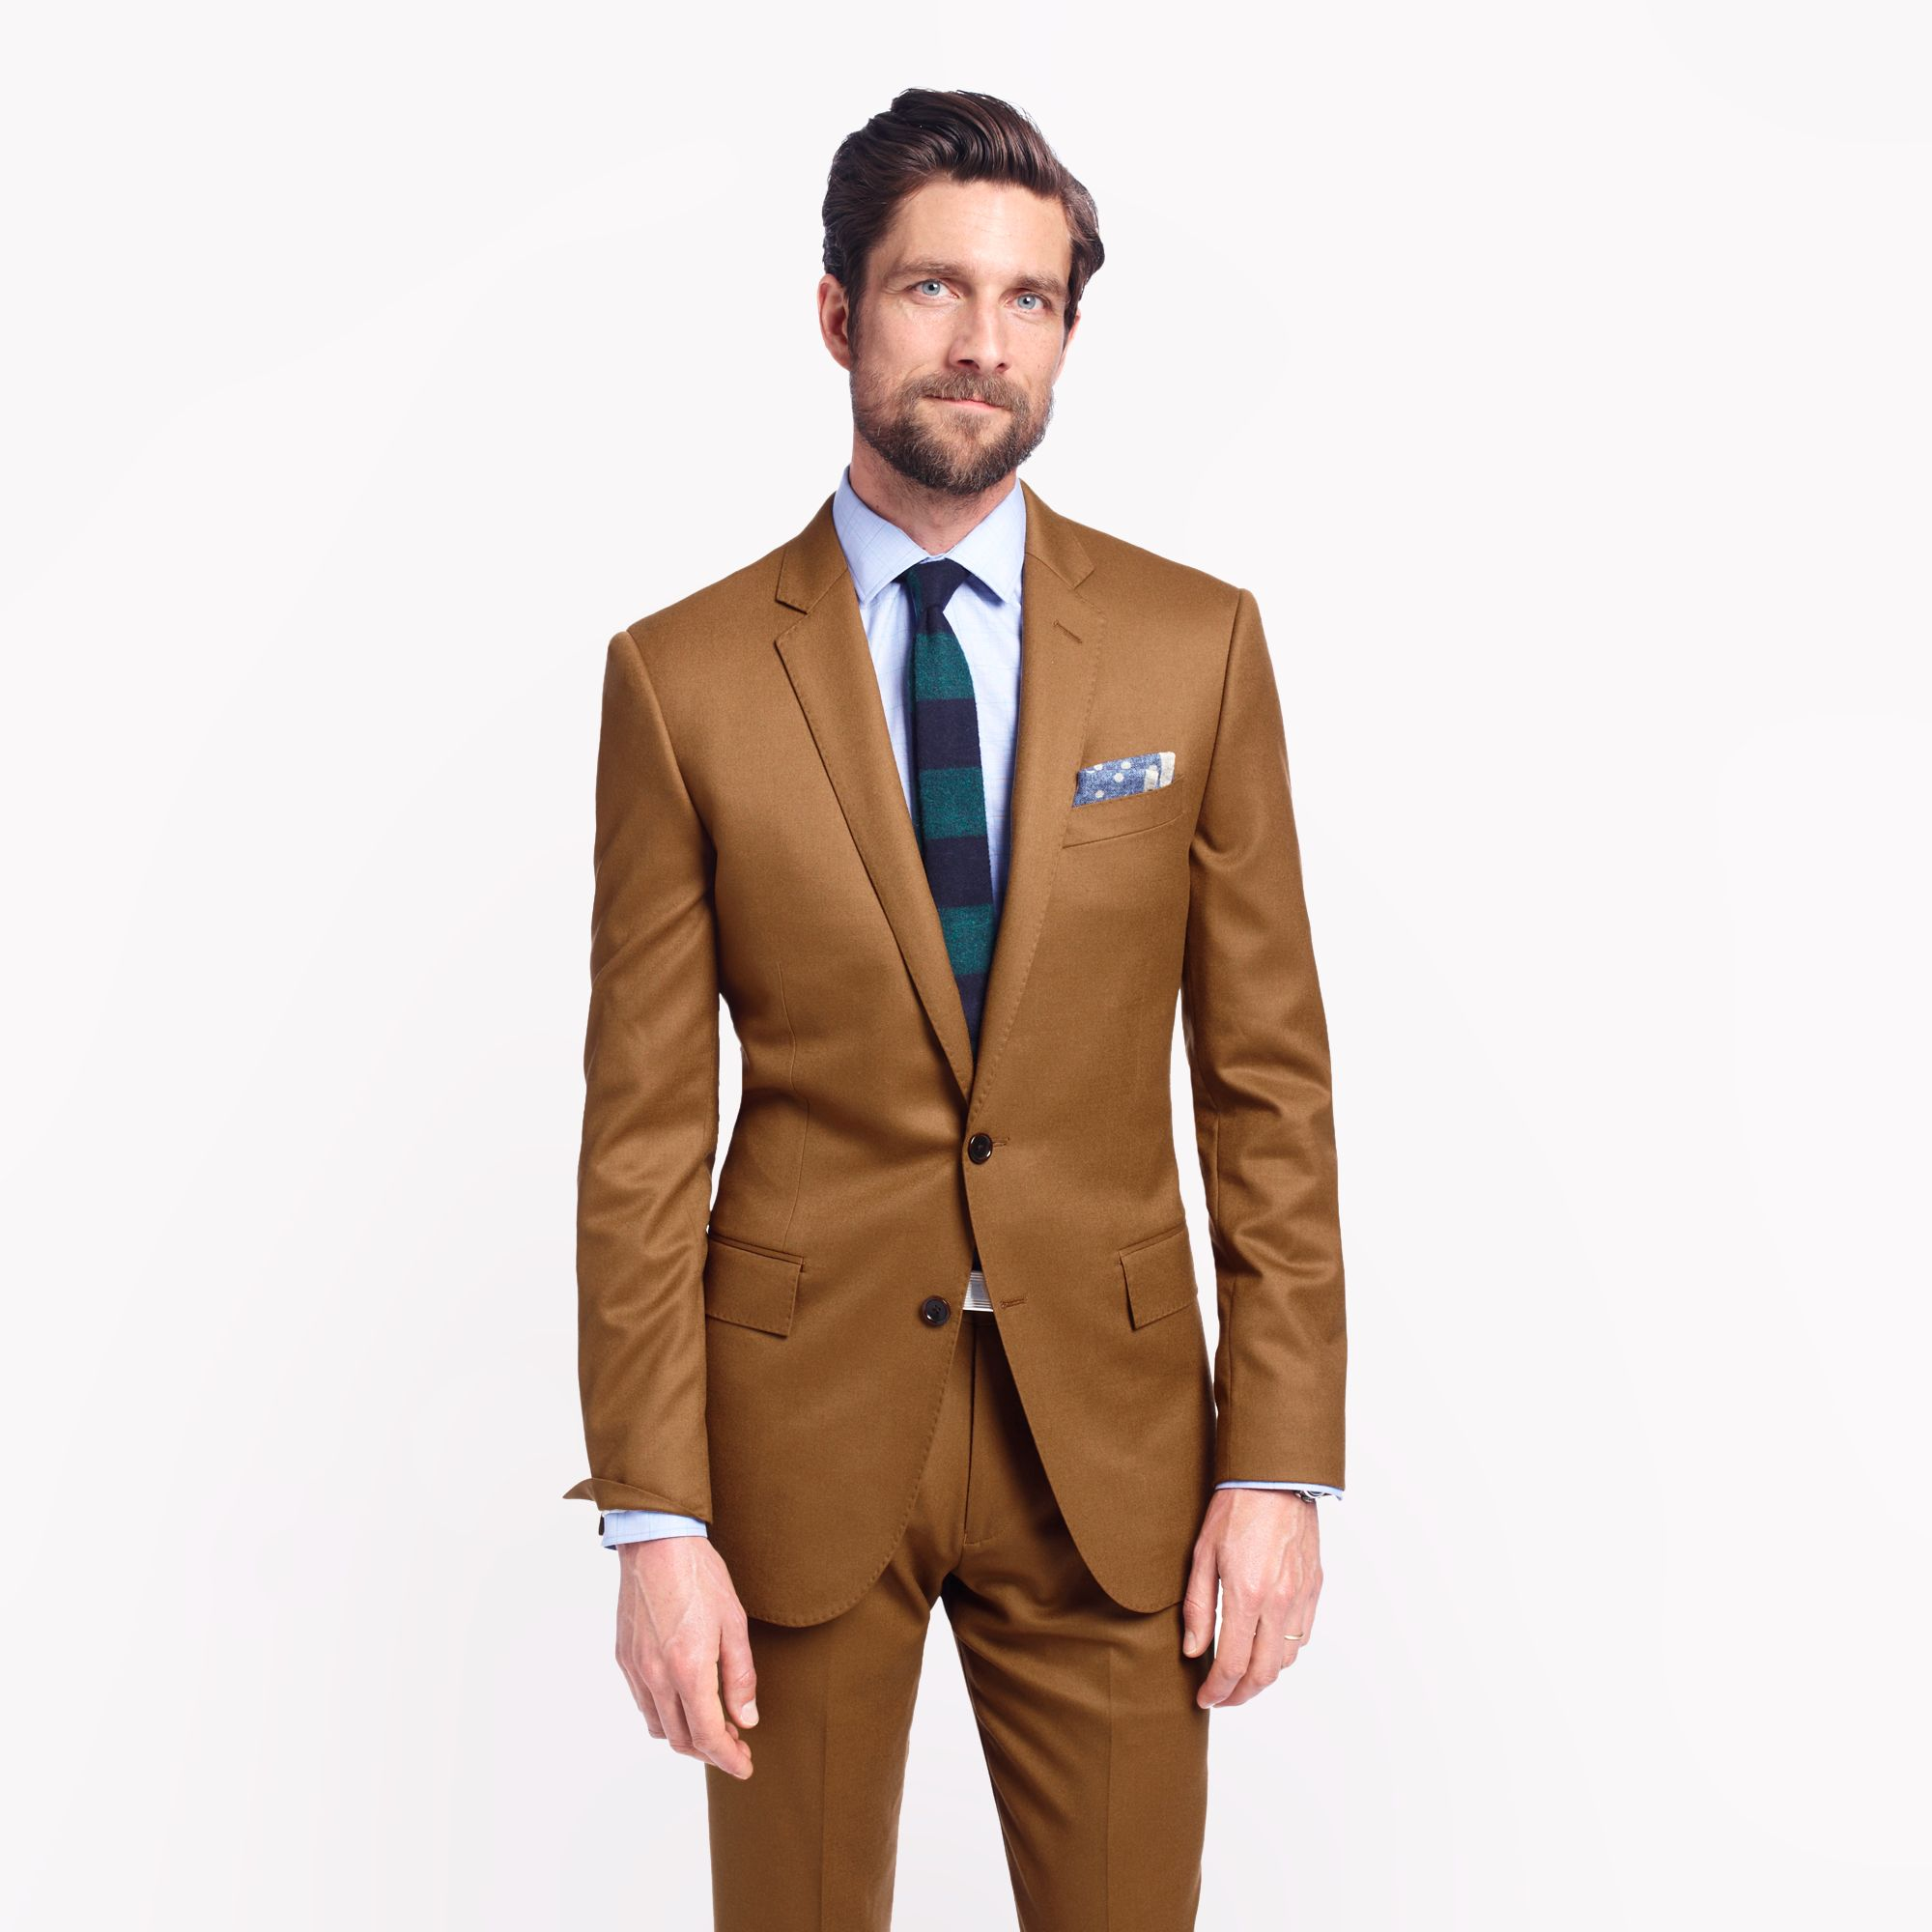 Shop for mens brown suit online at Target. Free shipping on purchases over $35 and save 5% every day with your Target REDcard.